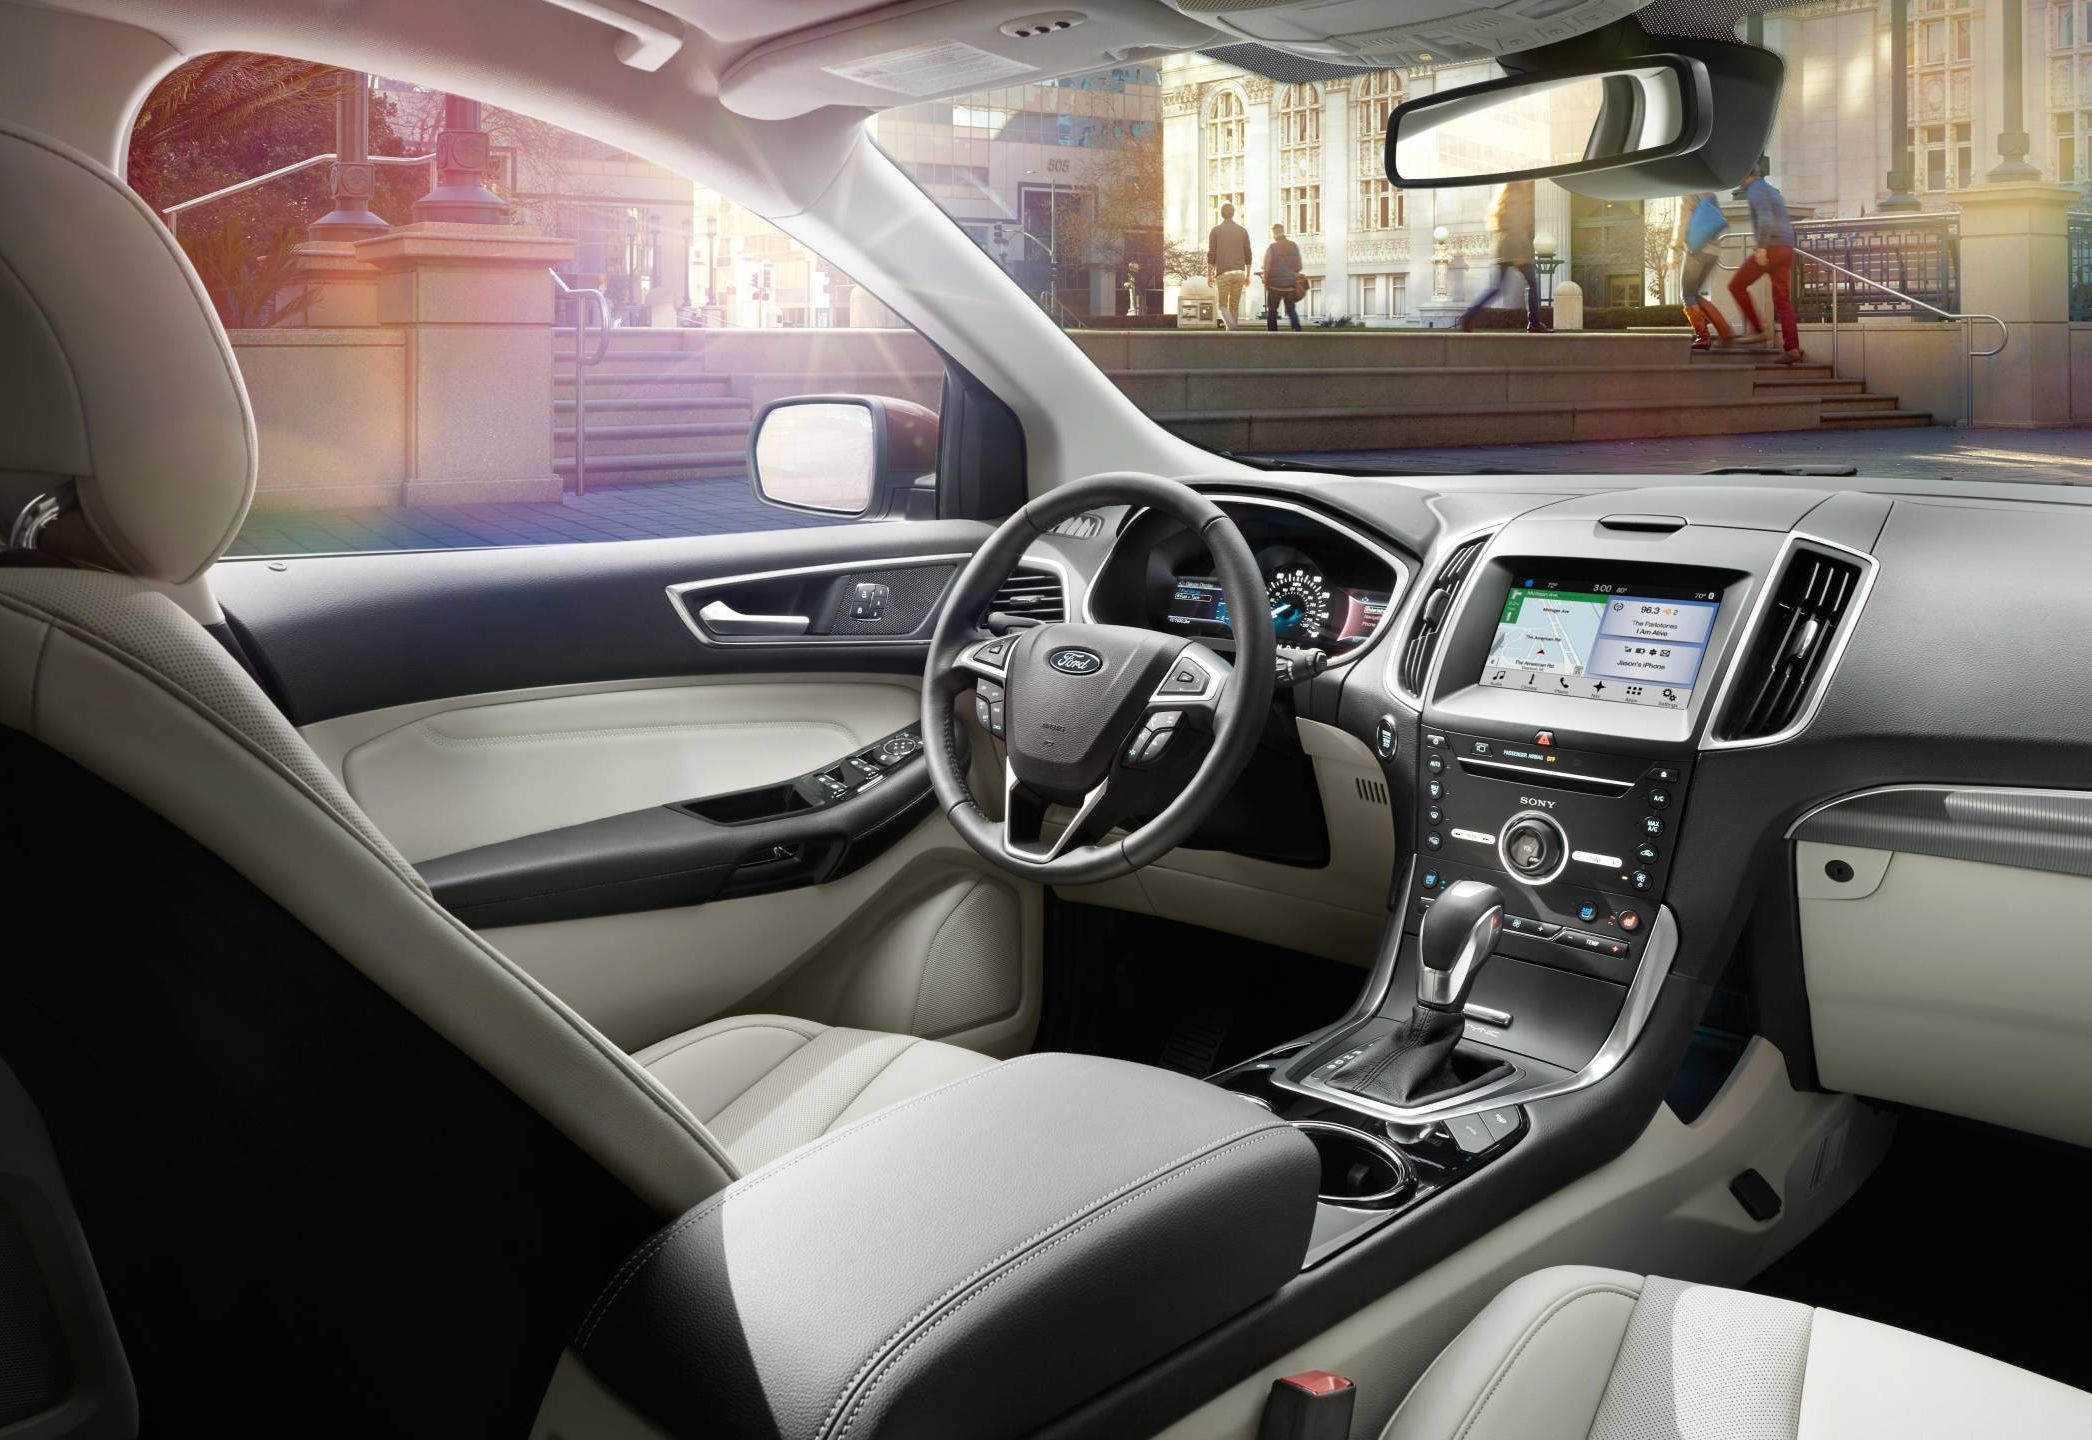 If The Ford Edge Seems Like The Perfect Fit For You And Your Lifestyle But You Havent Made The Jump To Purchase It We At David Stanley Auto Group Can